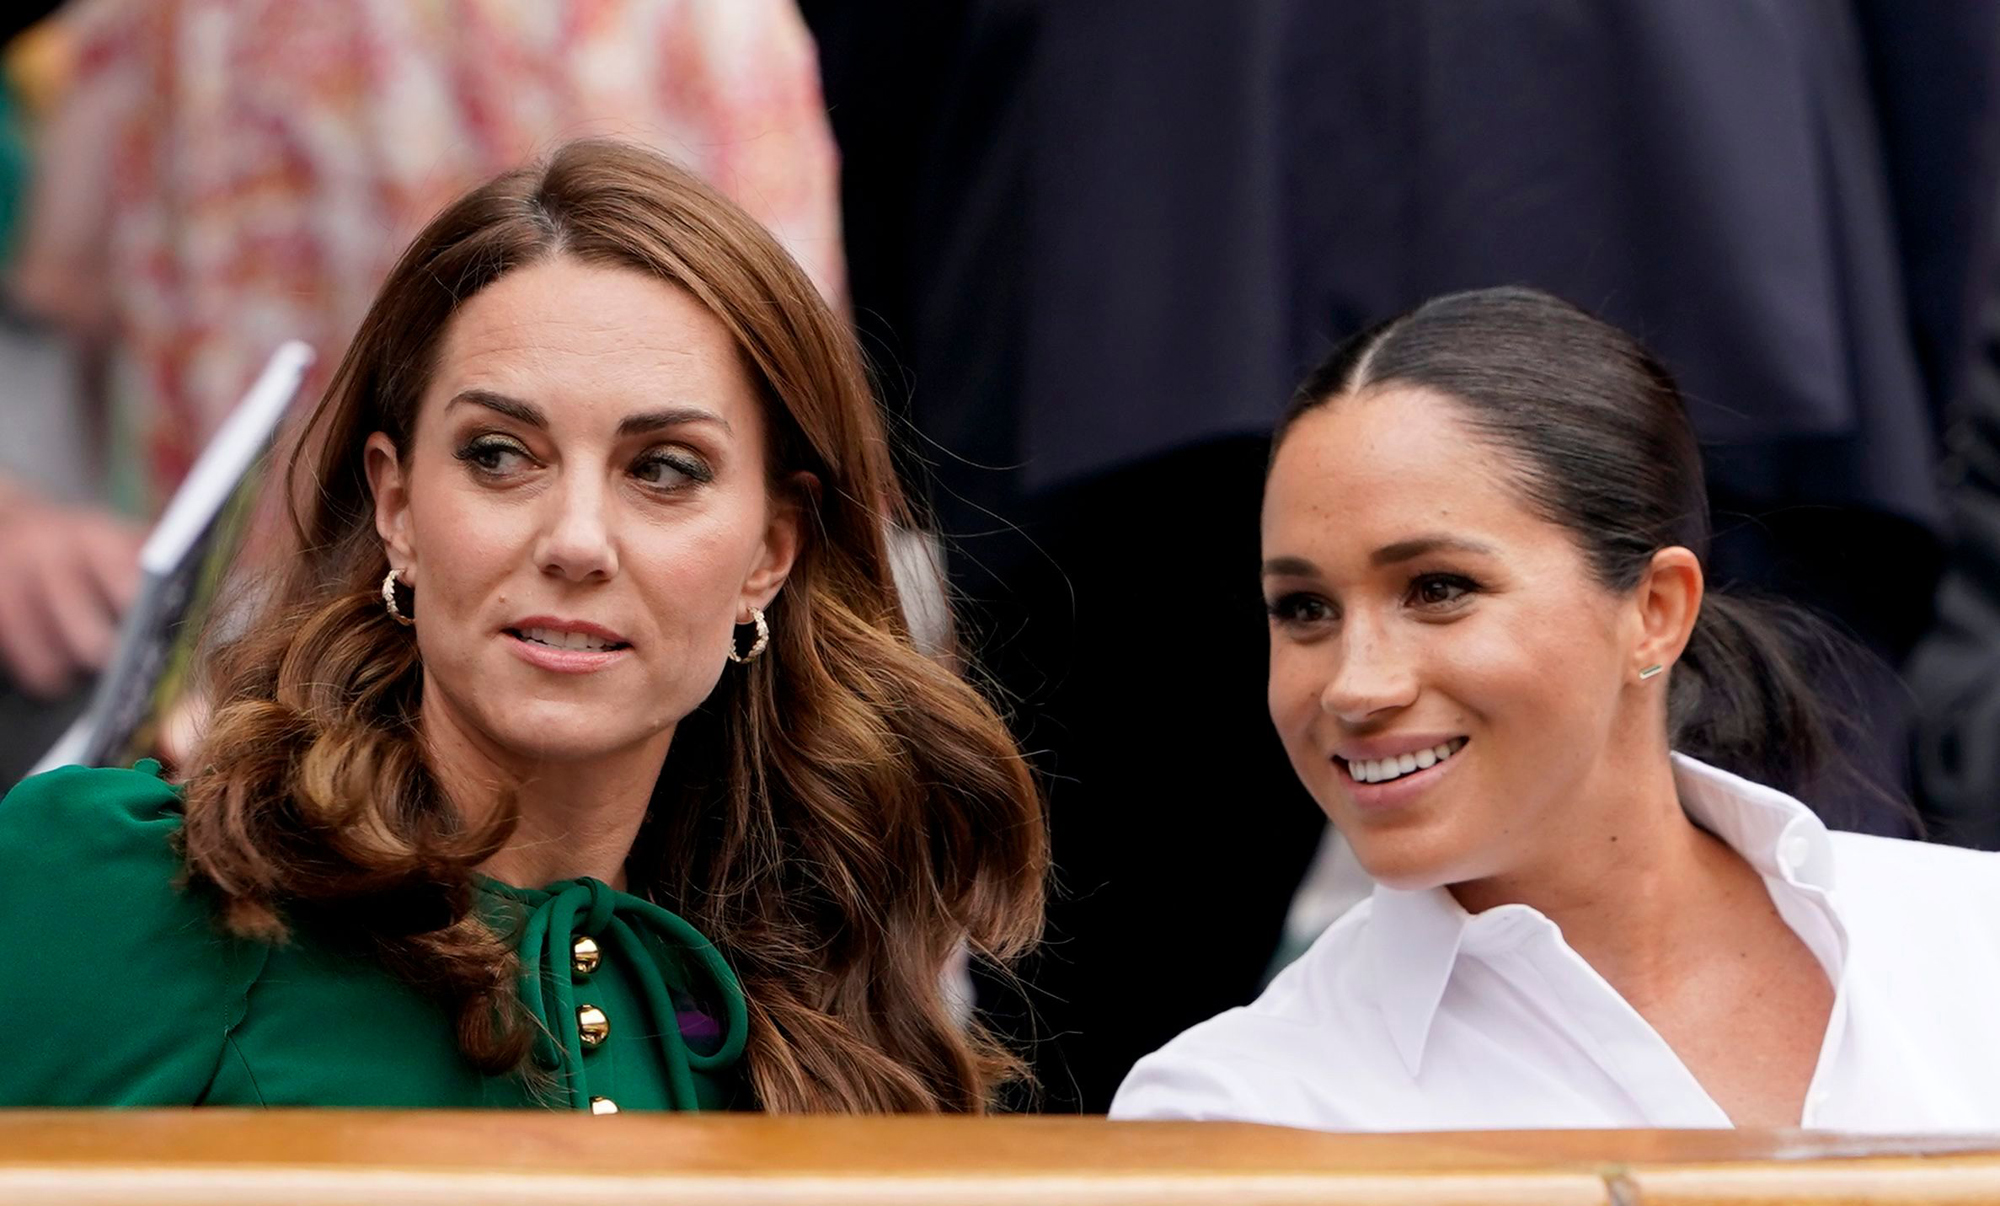 Catherine, the Duchess of Cambridge and Meghan Markle, the Duchess of Sussex